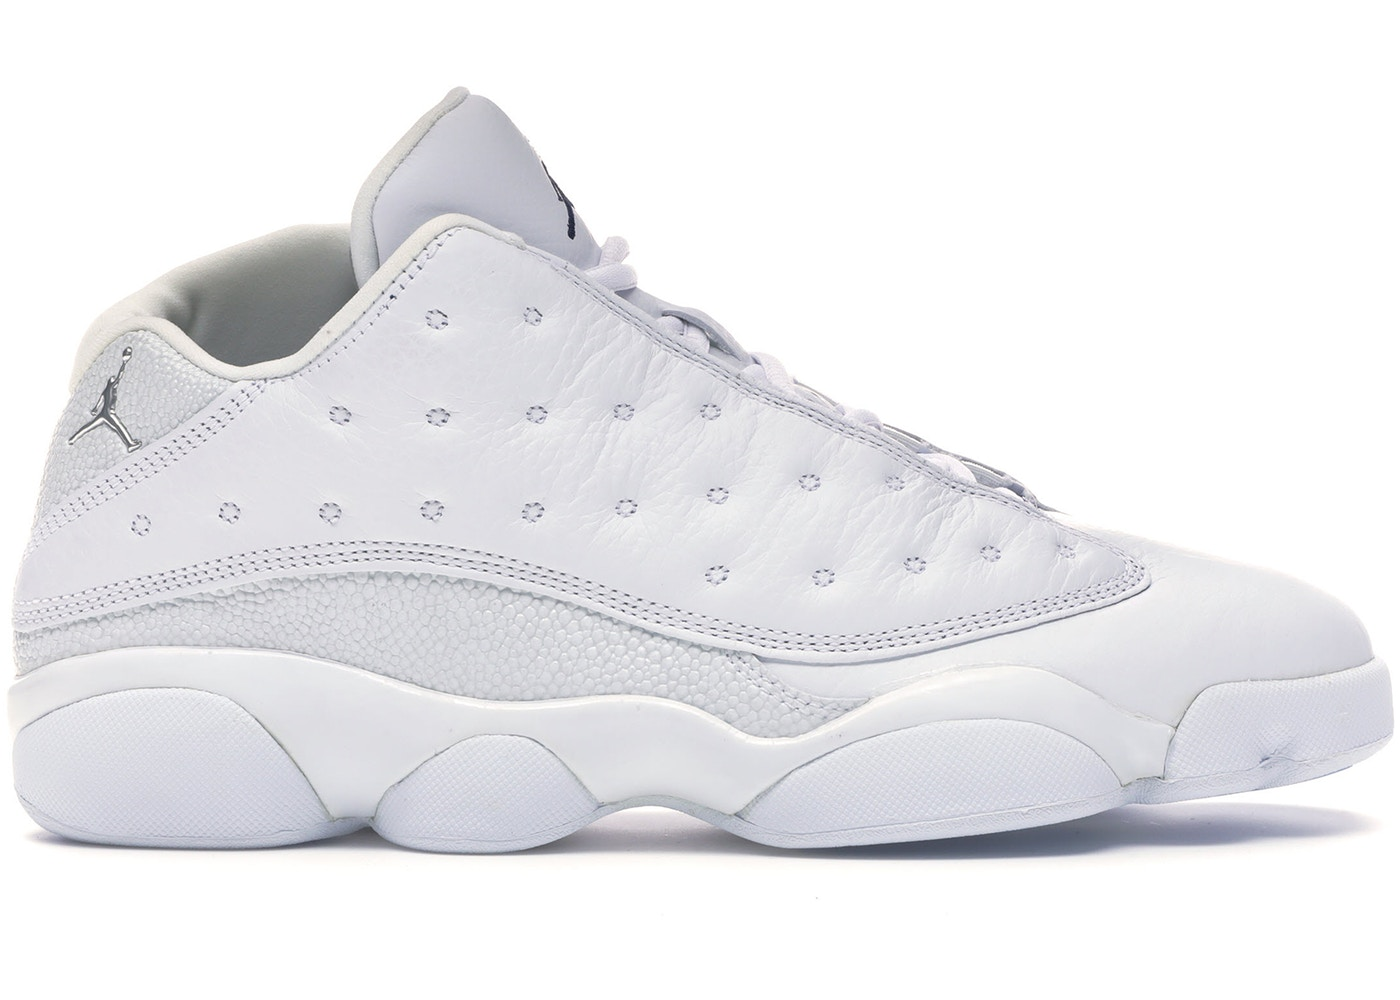 best service 61e43 54d9c Jordan 13 Retro Low All White